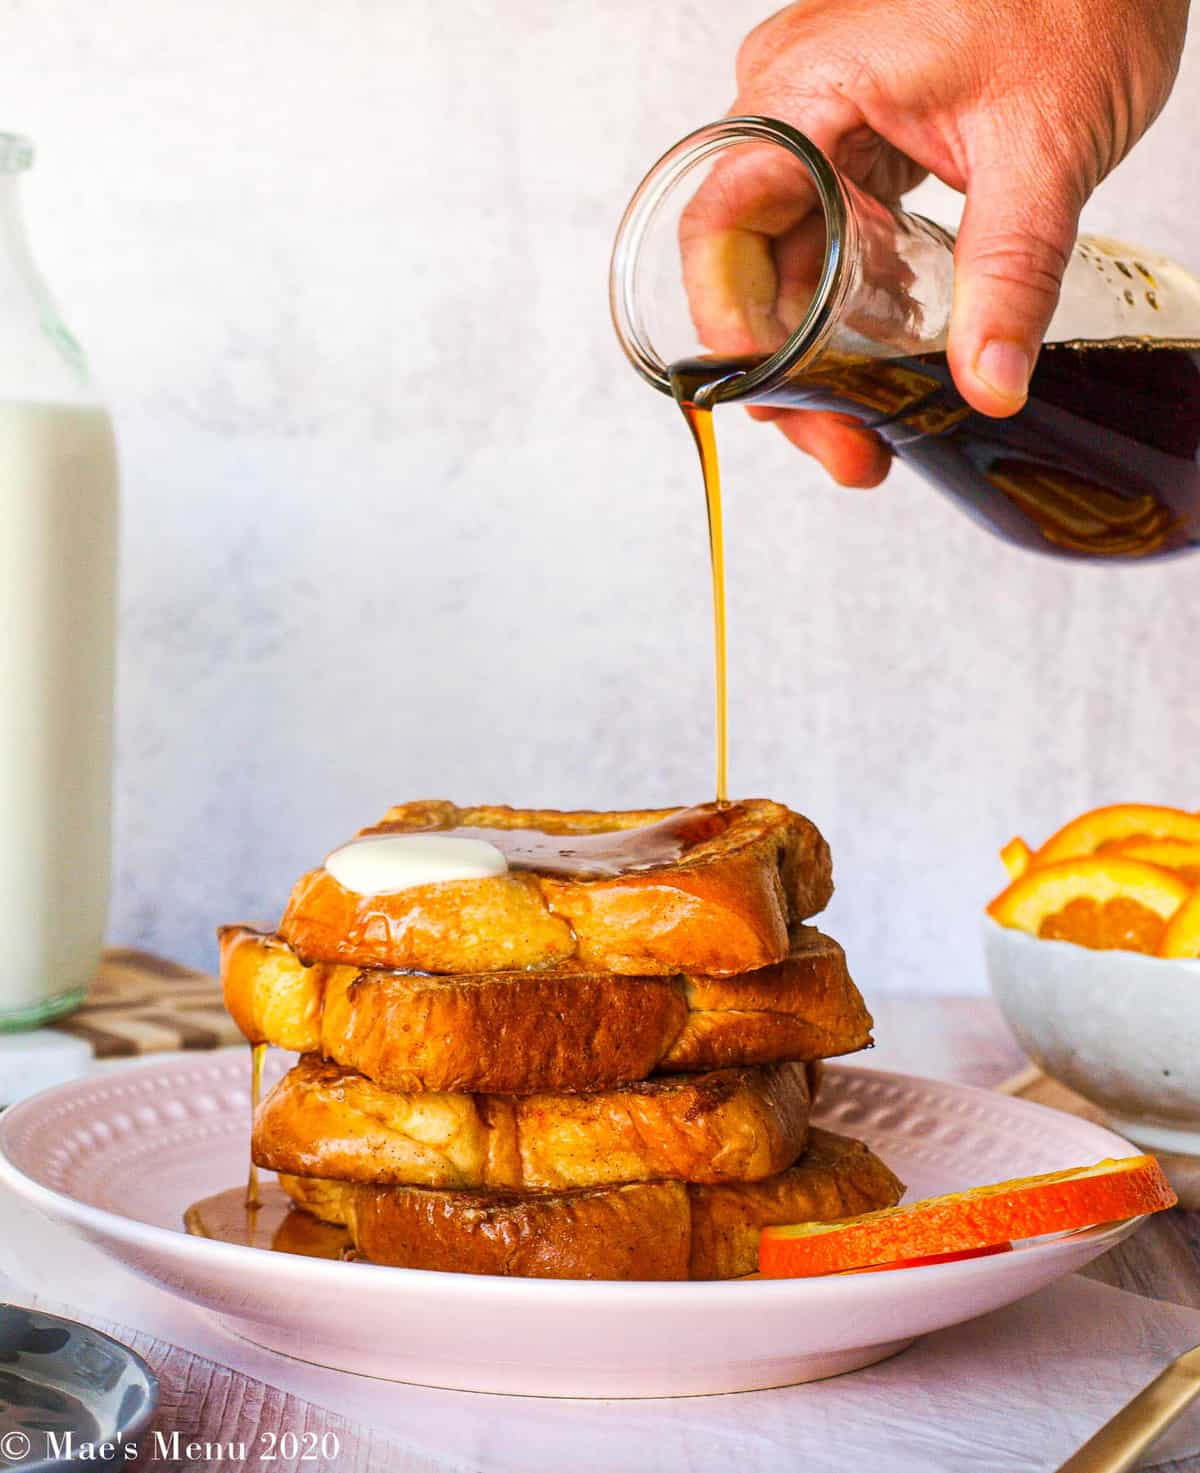 A hand pouring maple syrup over a large stack of brioche french toast. Extra maple syrup is pouring off the sides of the toast